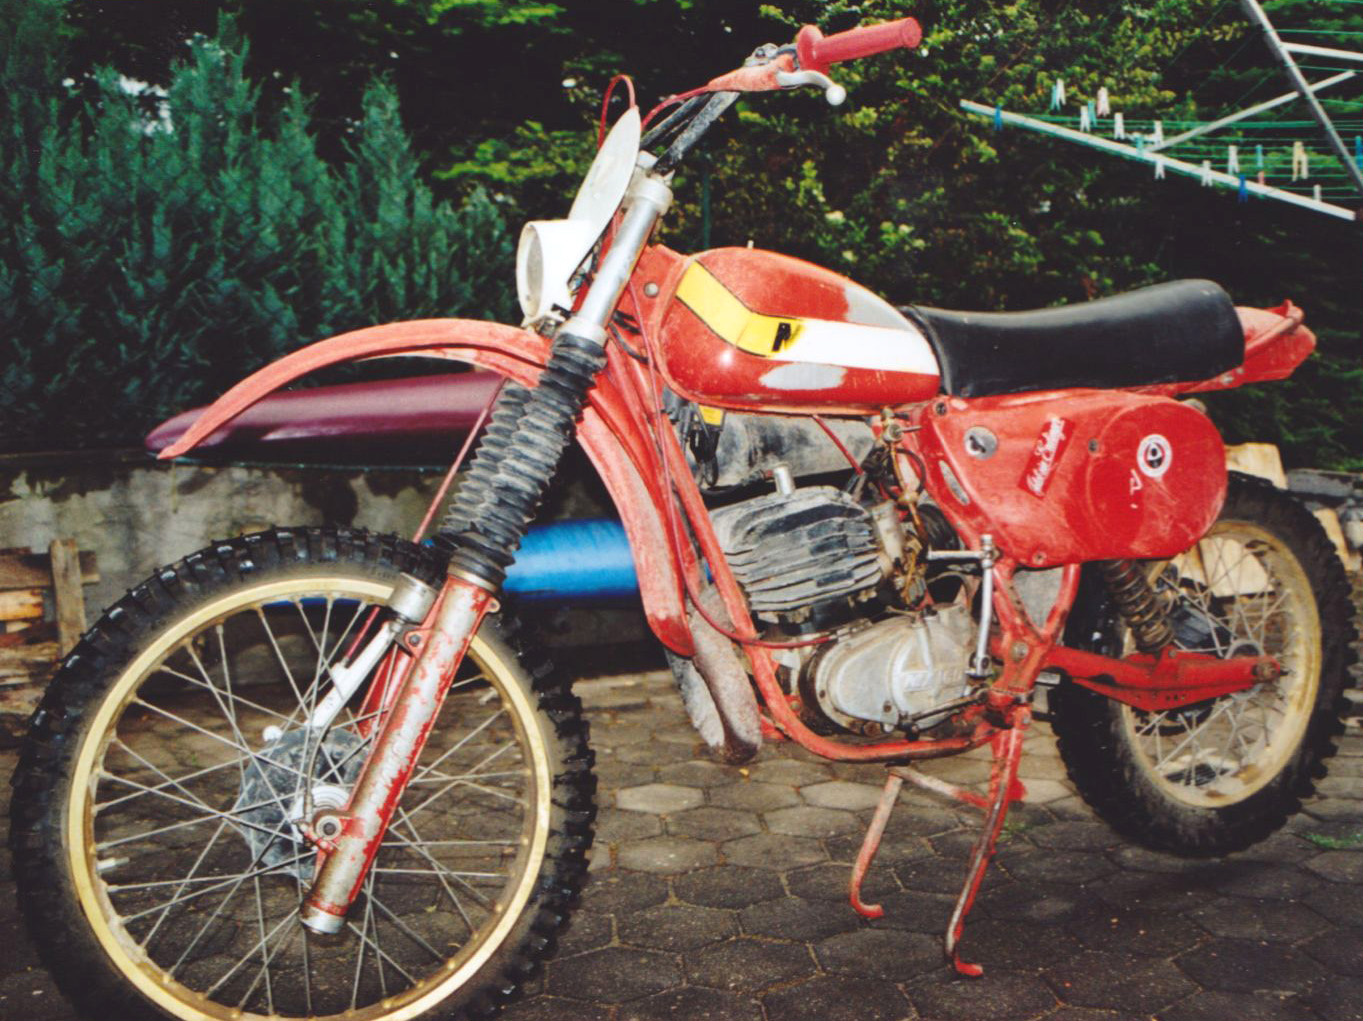 Maico MD 250/6 1973 images #103105